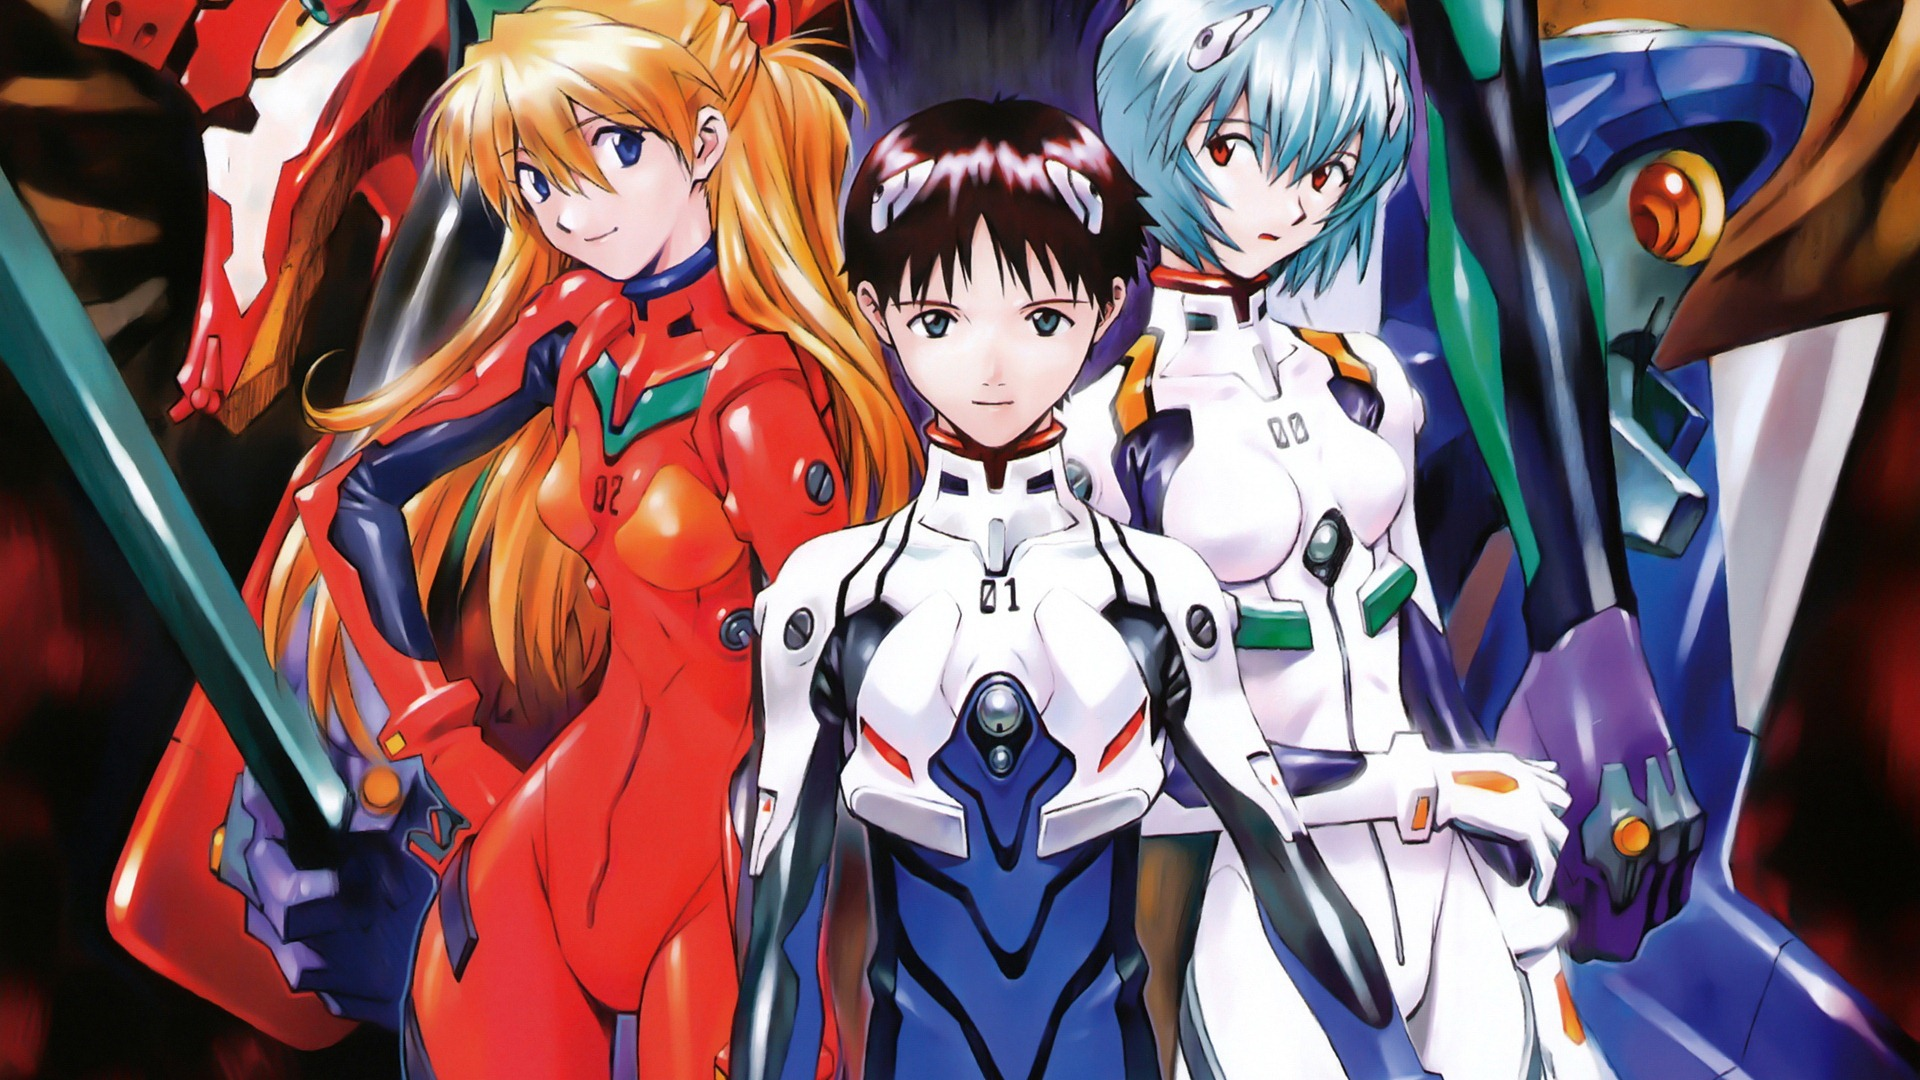 Free Download Neon Genesis Evangelion Hd Wallpapers 1920x1080